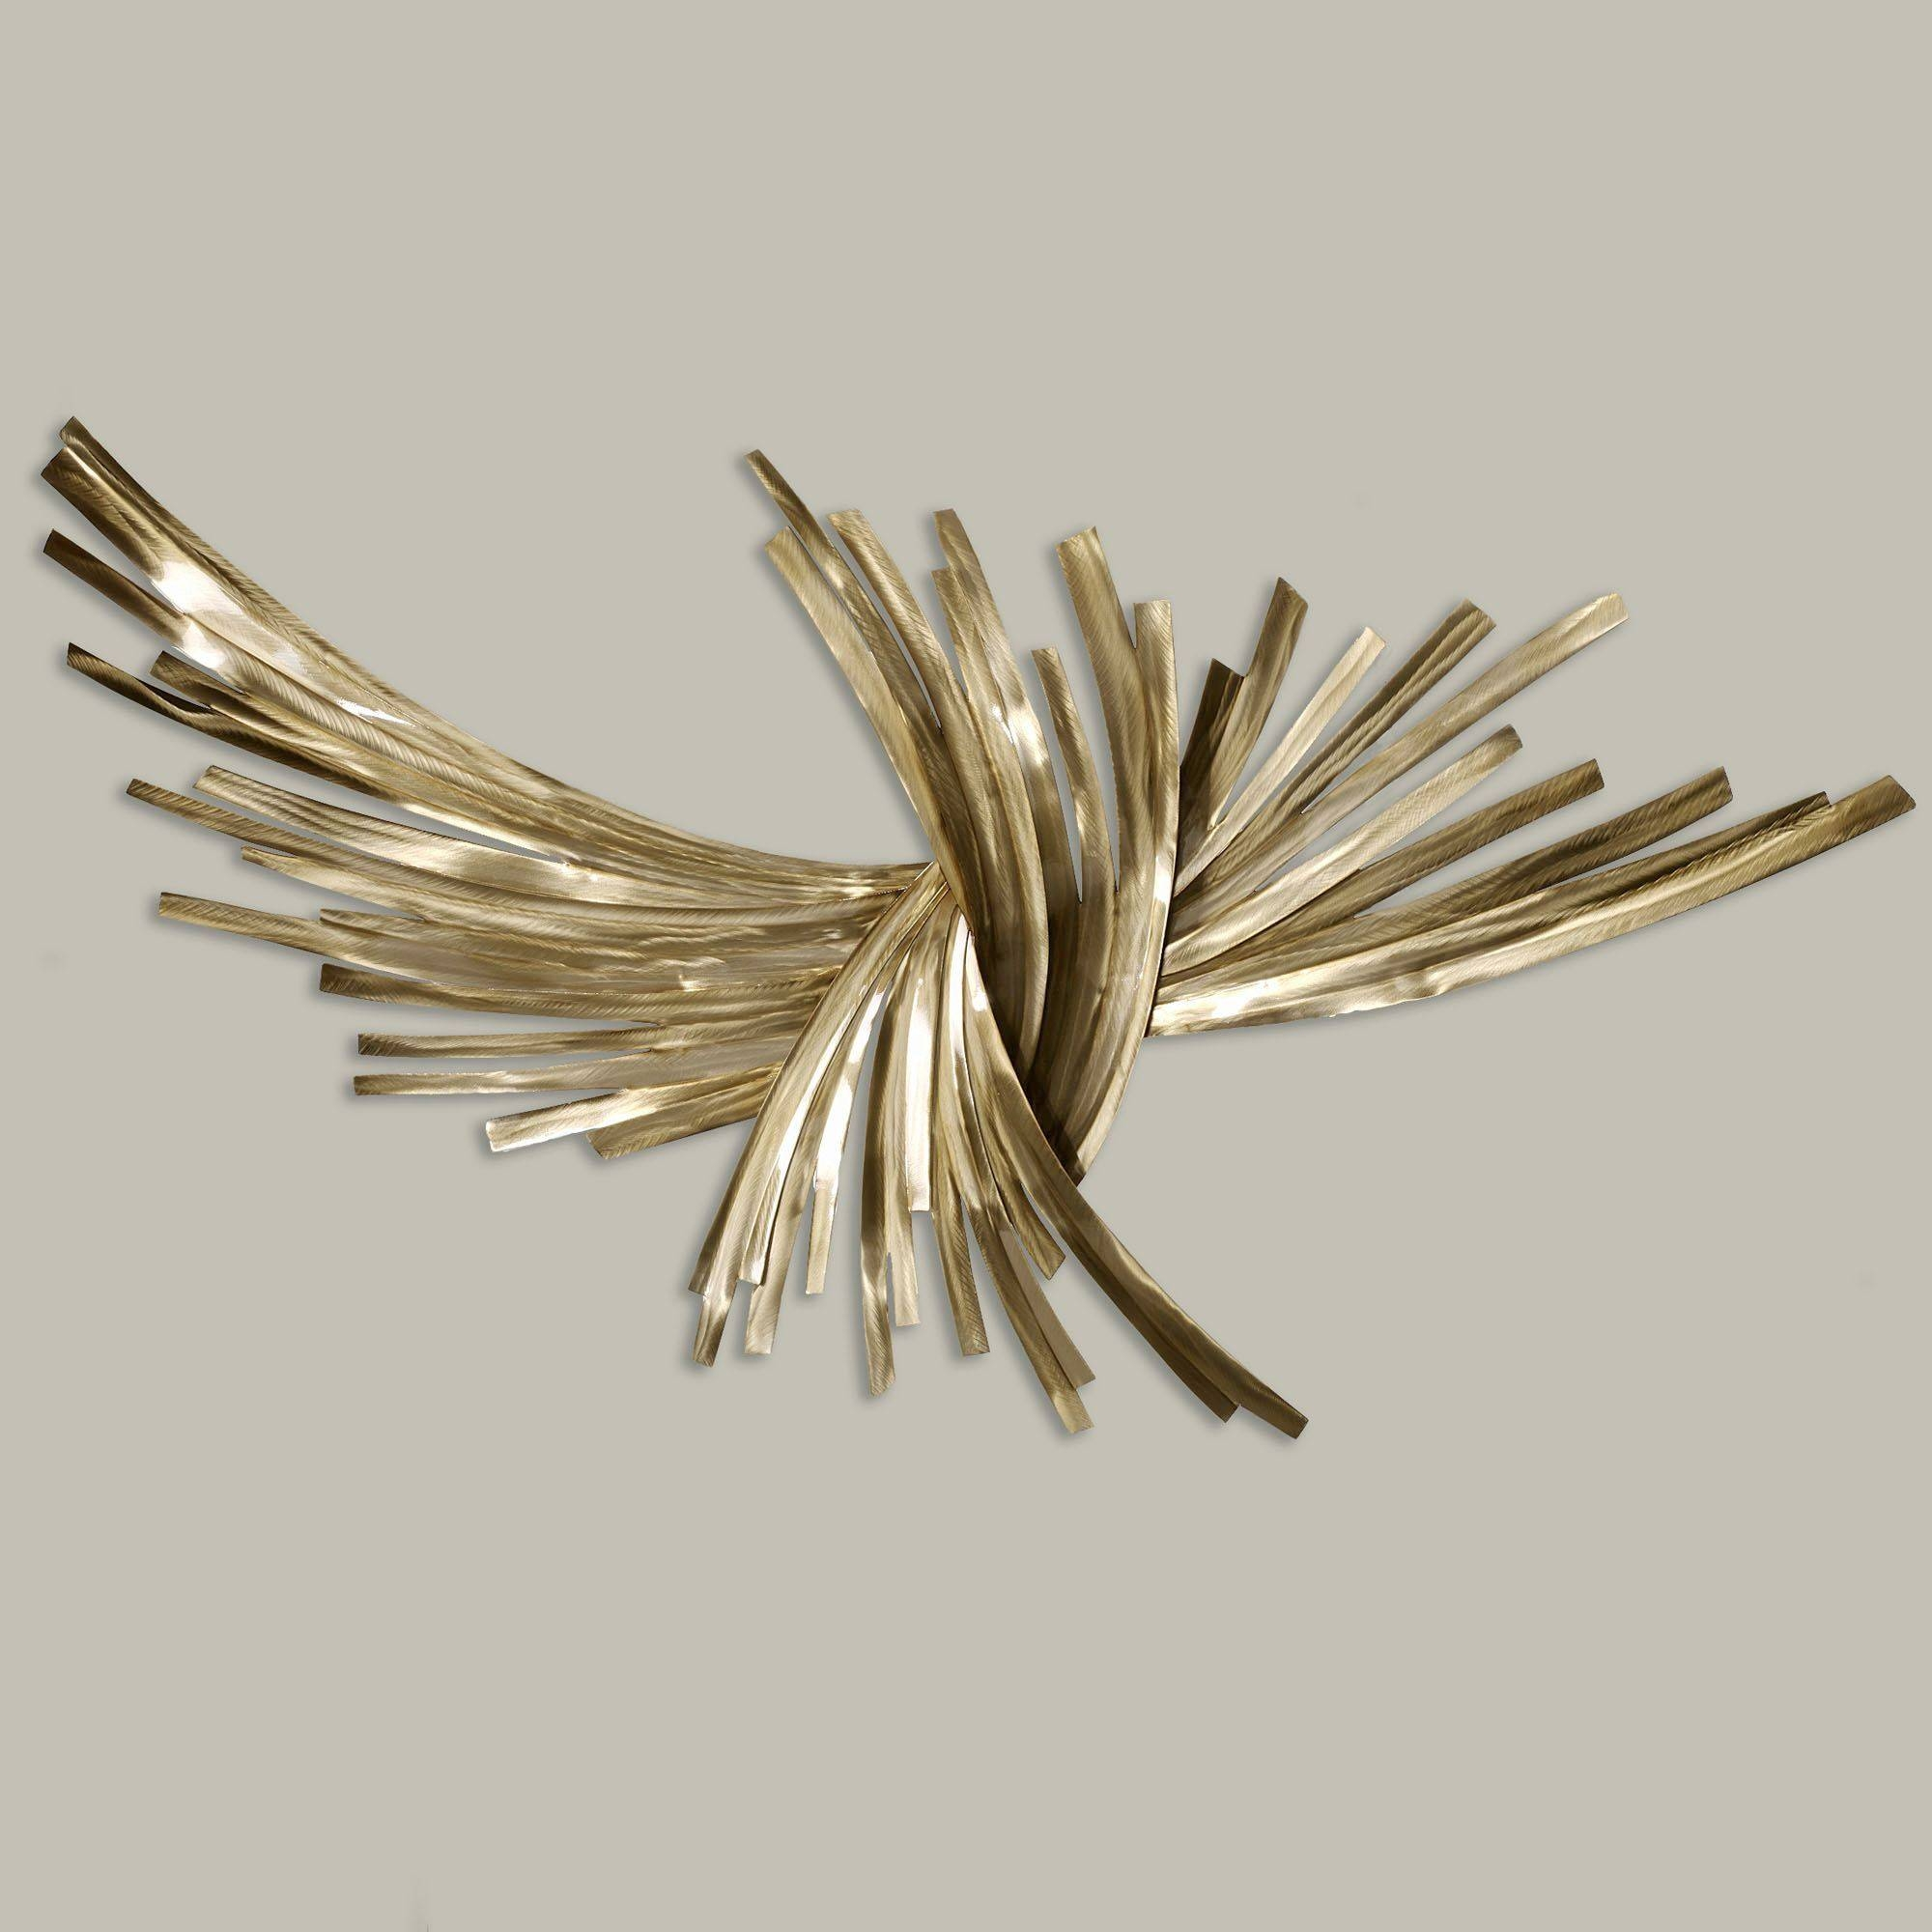 Contemporary Metal Wall Art Sculptures | Touch Of Class For Newest Contemporary Metal Wall Art (View 3 of 20)